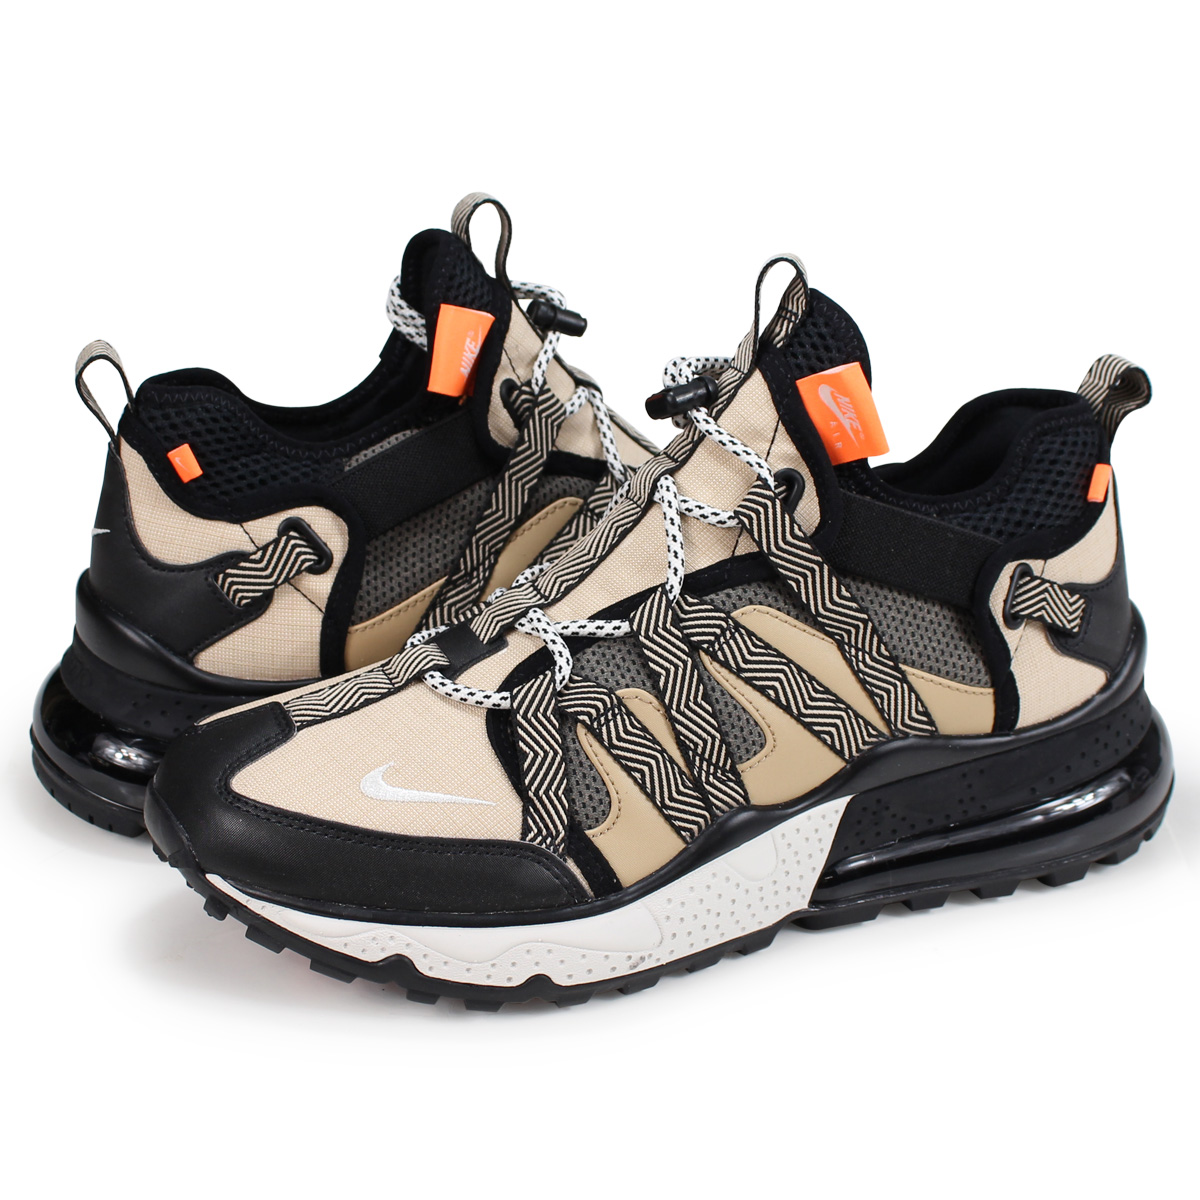 new concept 20a53 d73ac NIKE AIR MAX 270 BOWFIN Kie Ney AMAX 270 sneakers men AJ7200-001 black  [load planned Shinnyu load in reservation product 10/3 containing]